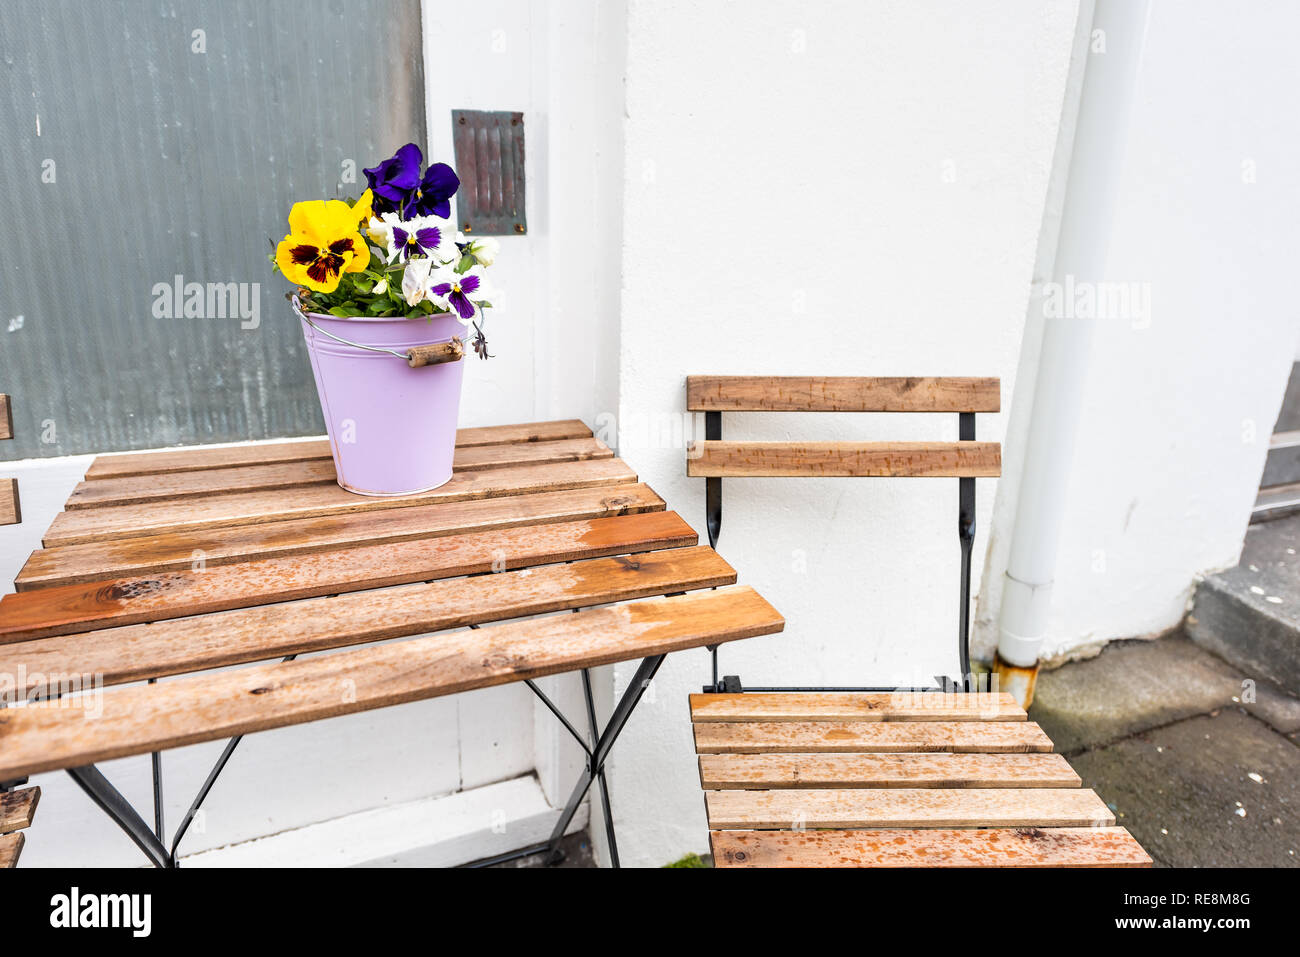 Empty wooden table outside restaurant cafe with chairs on sidewalk street and purple yellow pansy flowers in flowerpot potted plant setting with nobod - Stock Image